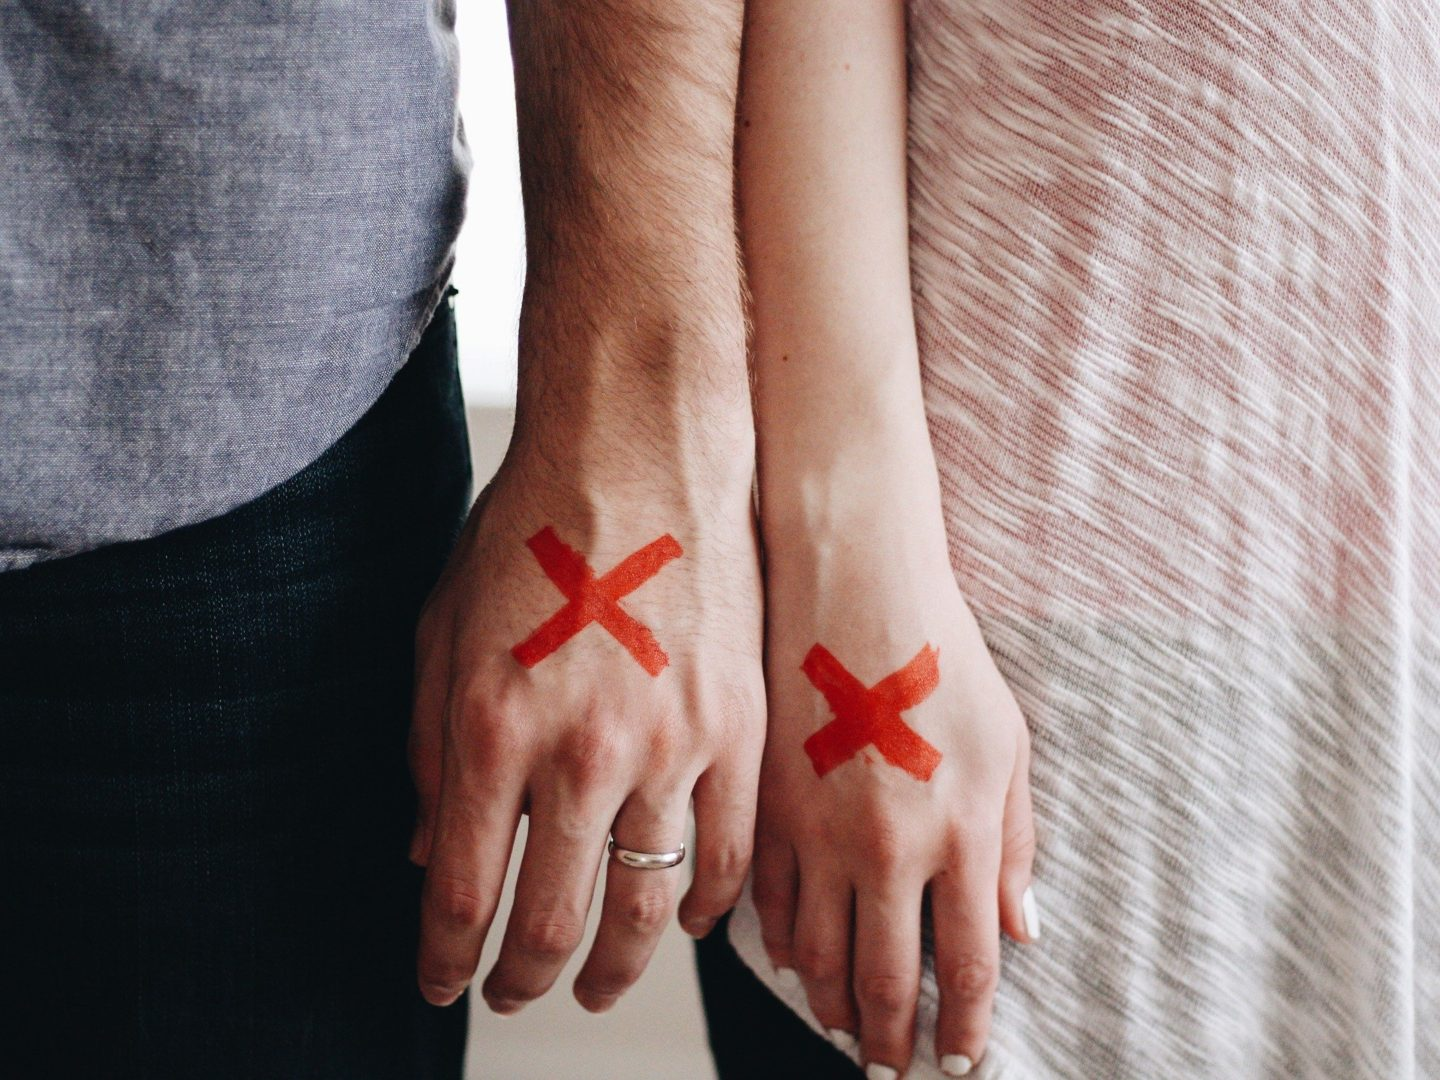 a man and woman hands almost touching both with a red cross on the back of them